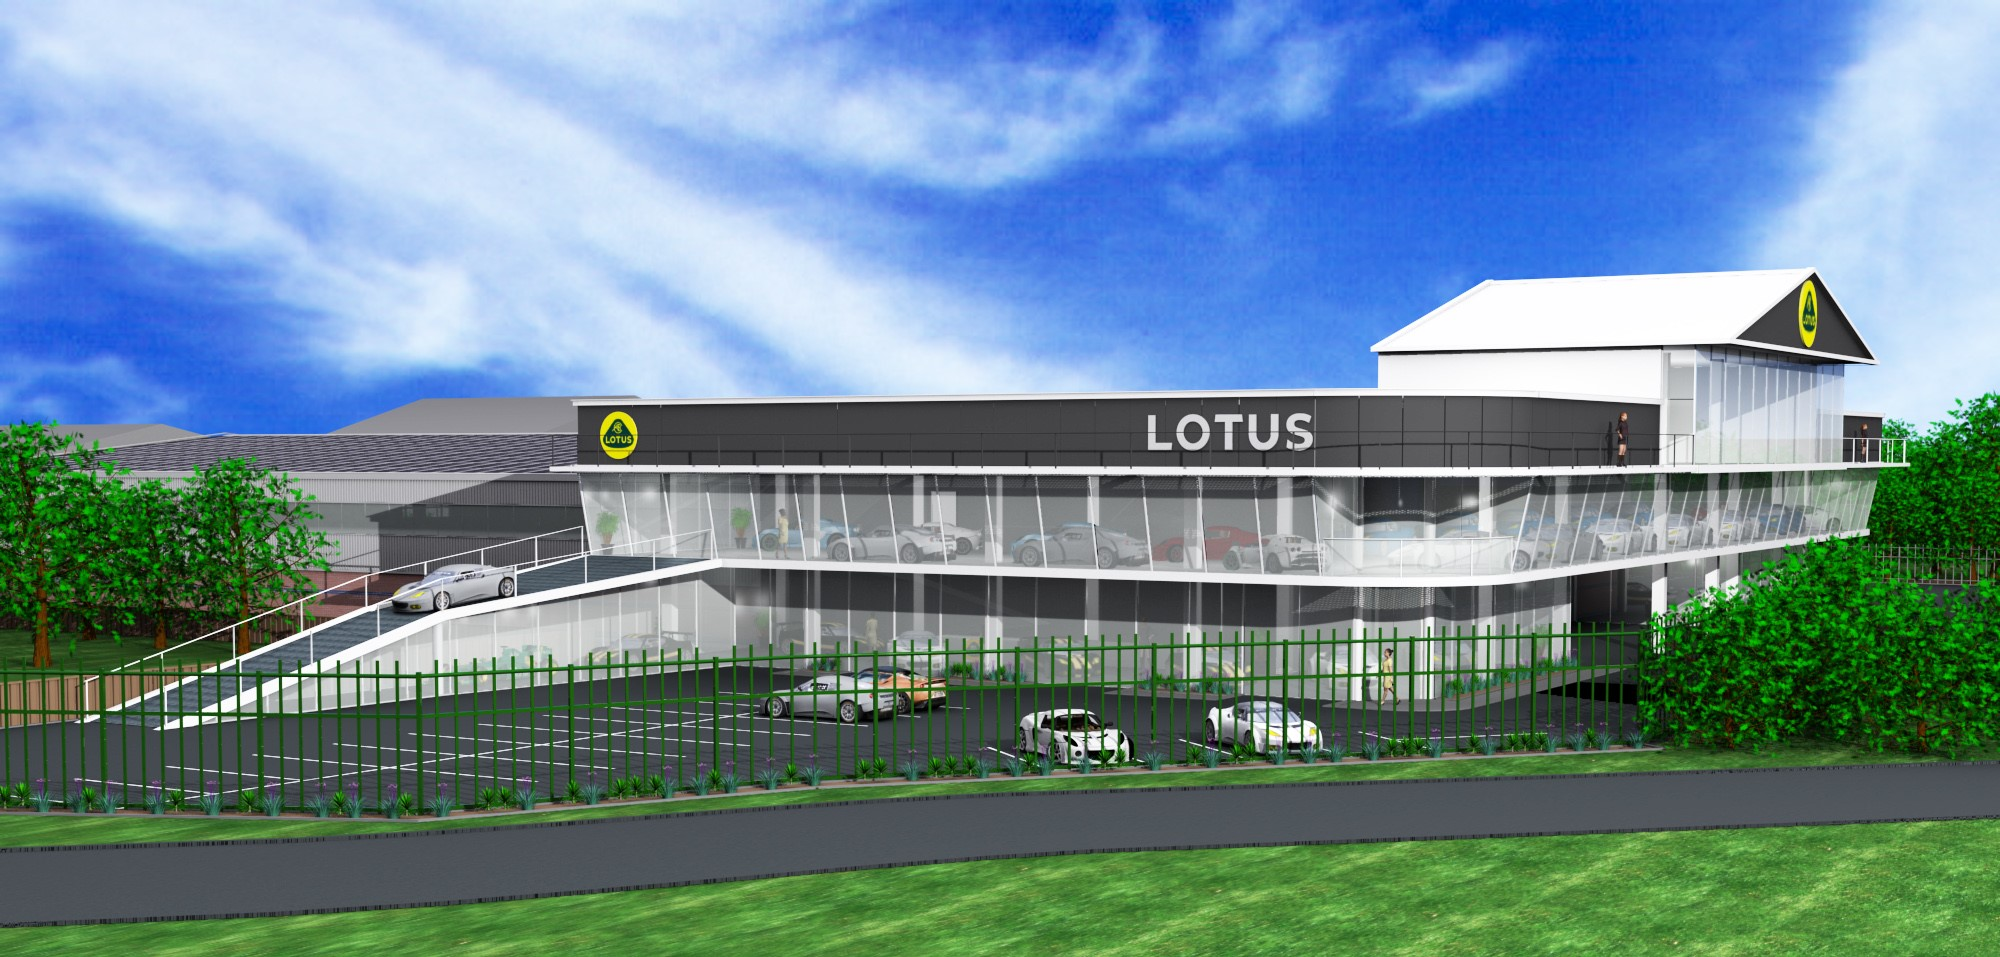 Central Lotus New Showroom - Central Lotus